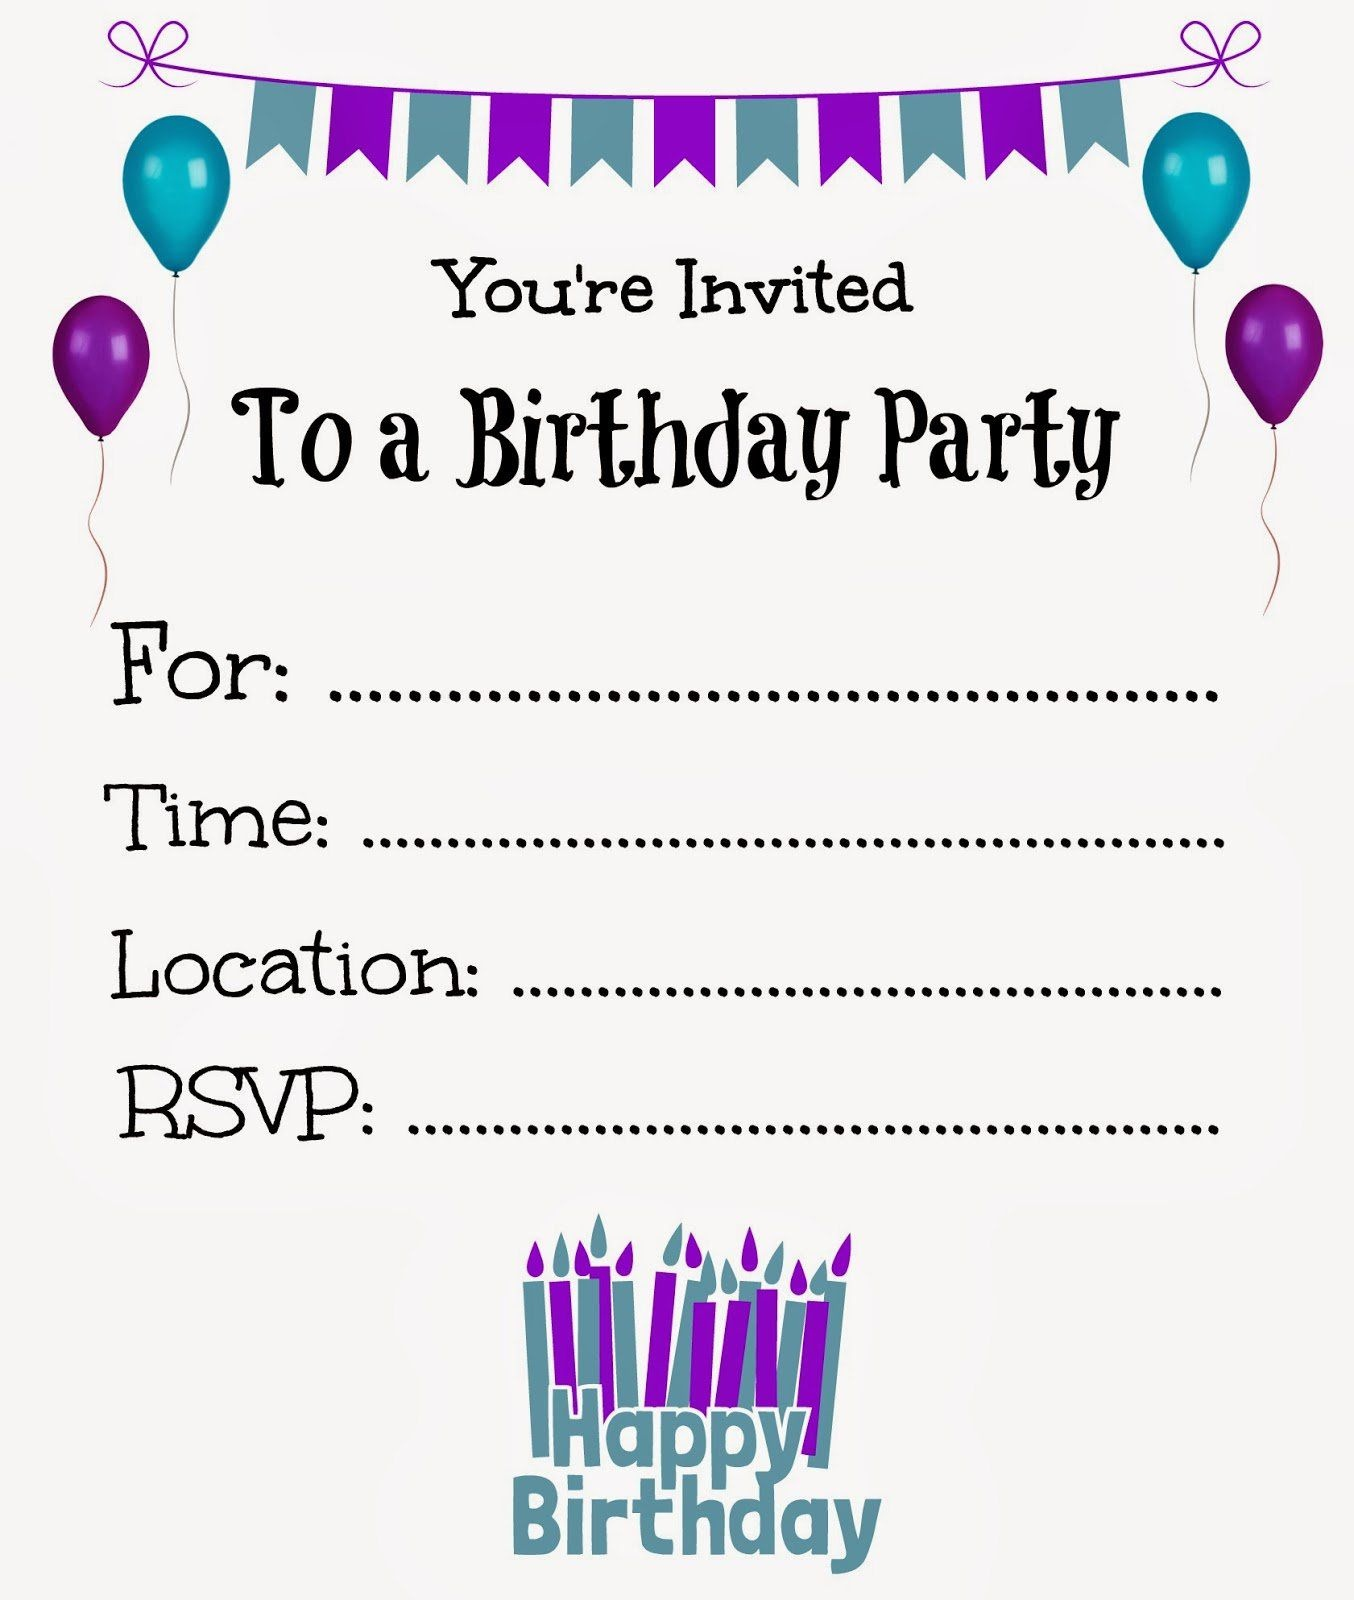 Free Birthday Invitation Templates To Inspire You How To Create The - Make A Birthday Invitation Online Free Printable